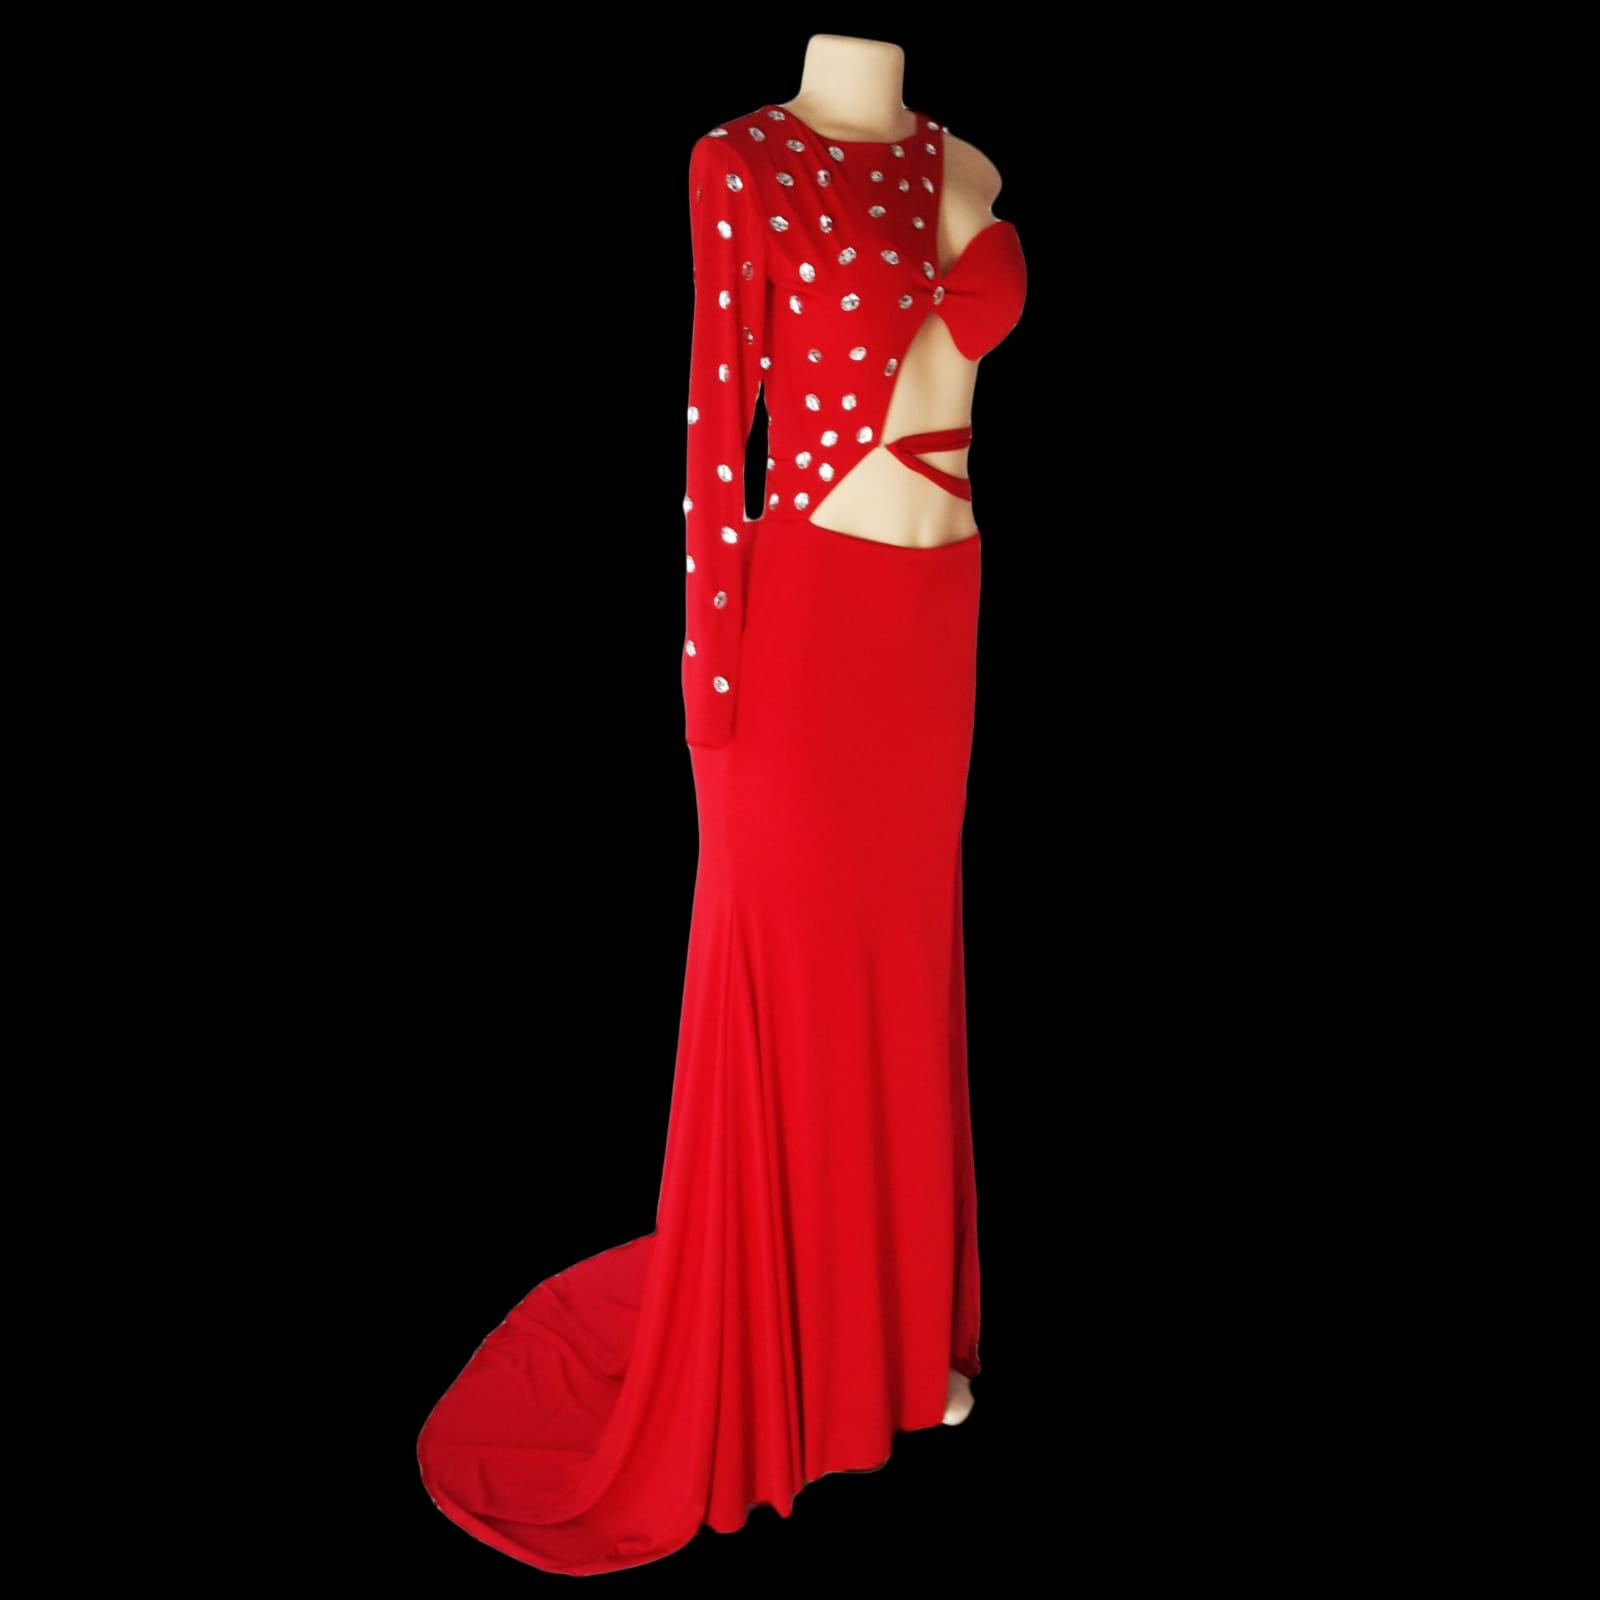 Red sexy different sweet 16 birthday party evening dress 4 red sexy and different sweet 16 evening dress. With a slit and a train and a closed and open side. Single sleeve, the dress is tied from the centre of the back to the centre of the front. Closed side and sleeve with clear silver beads